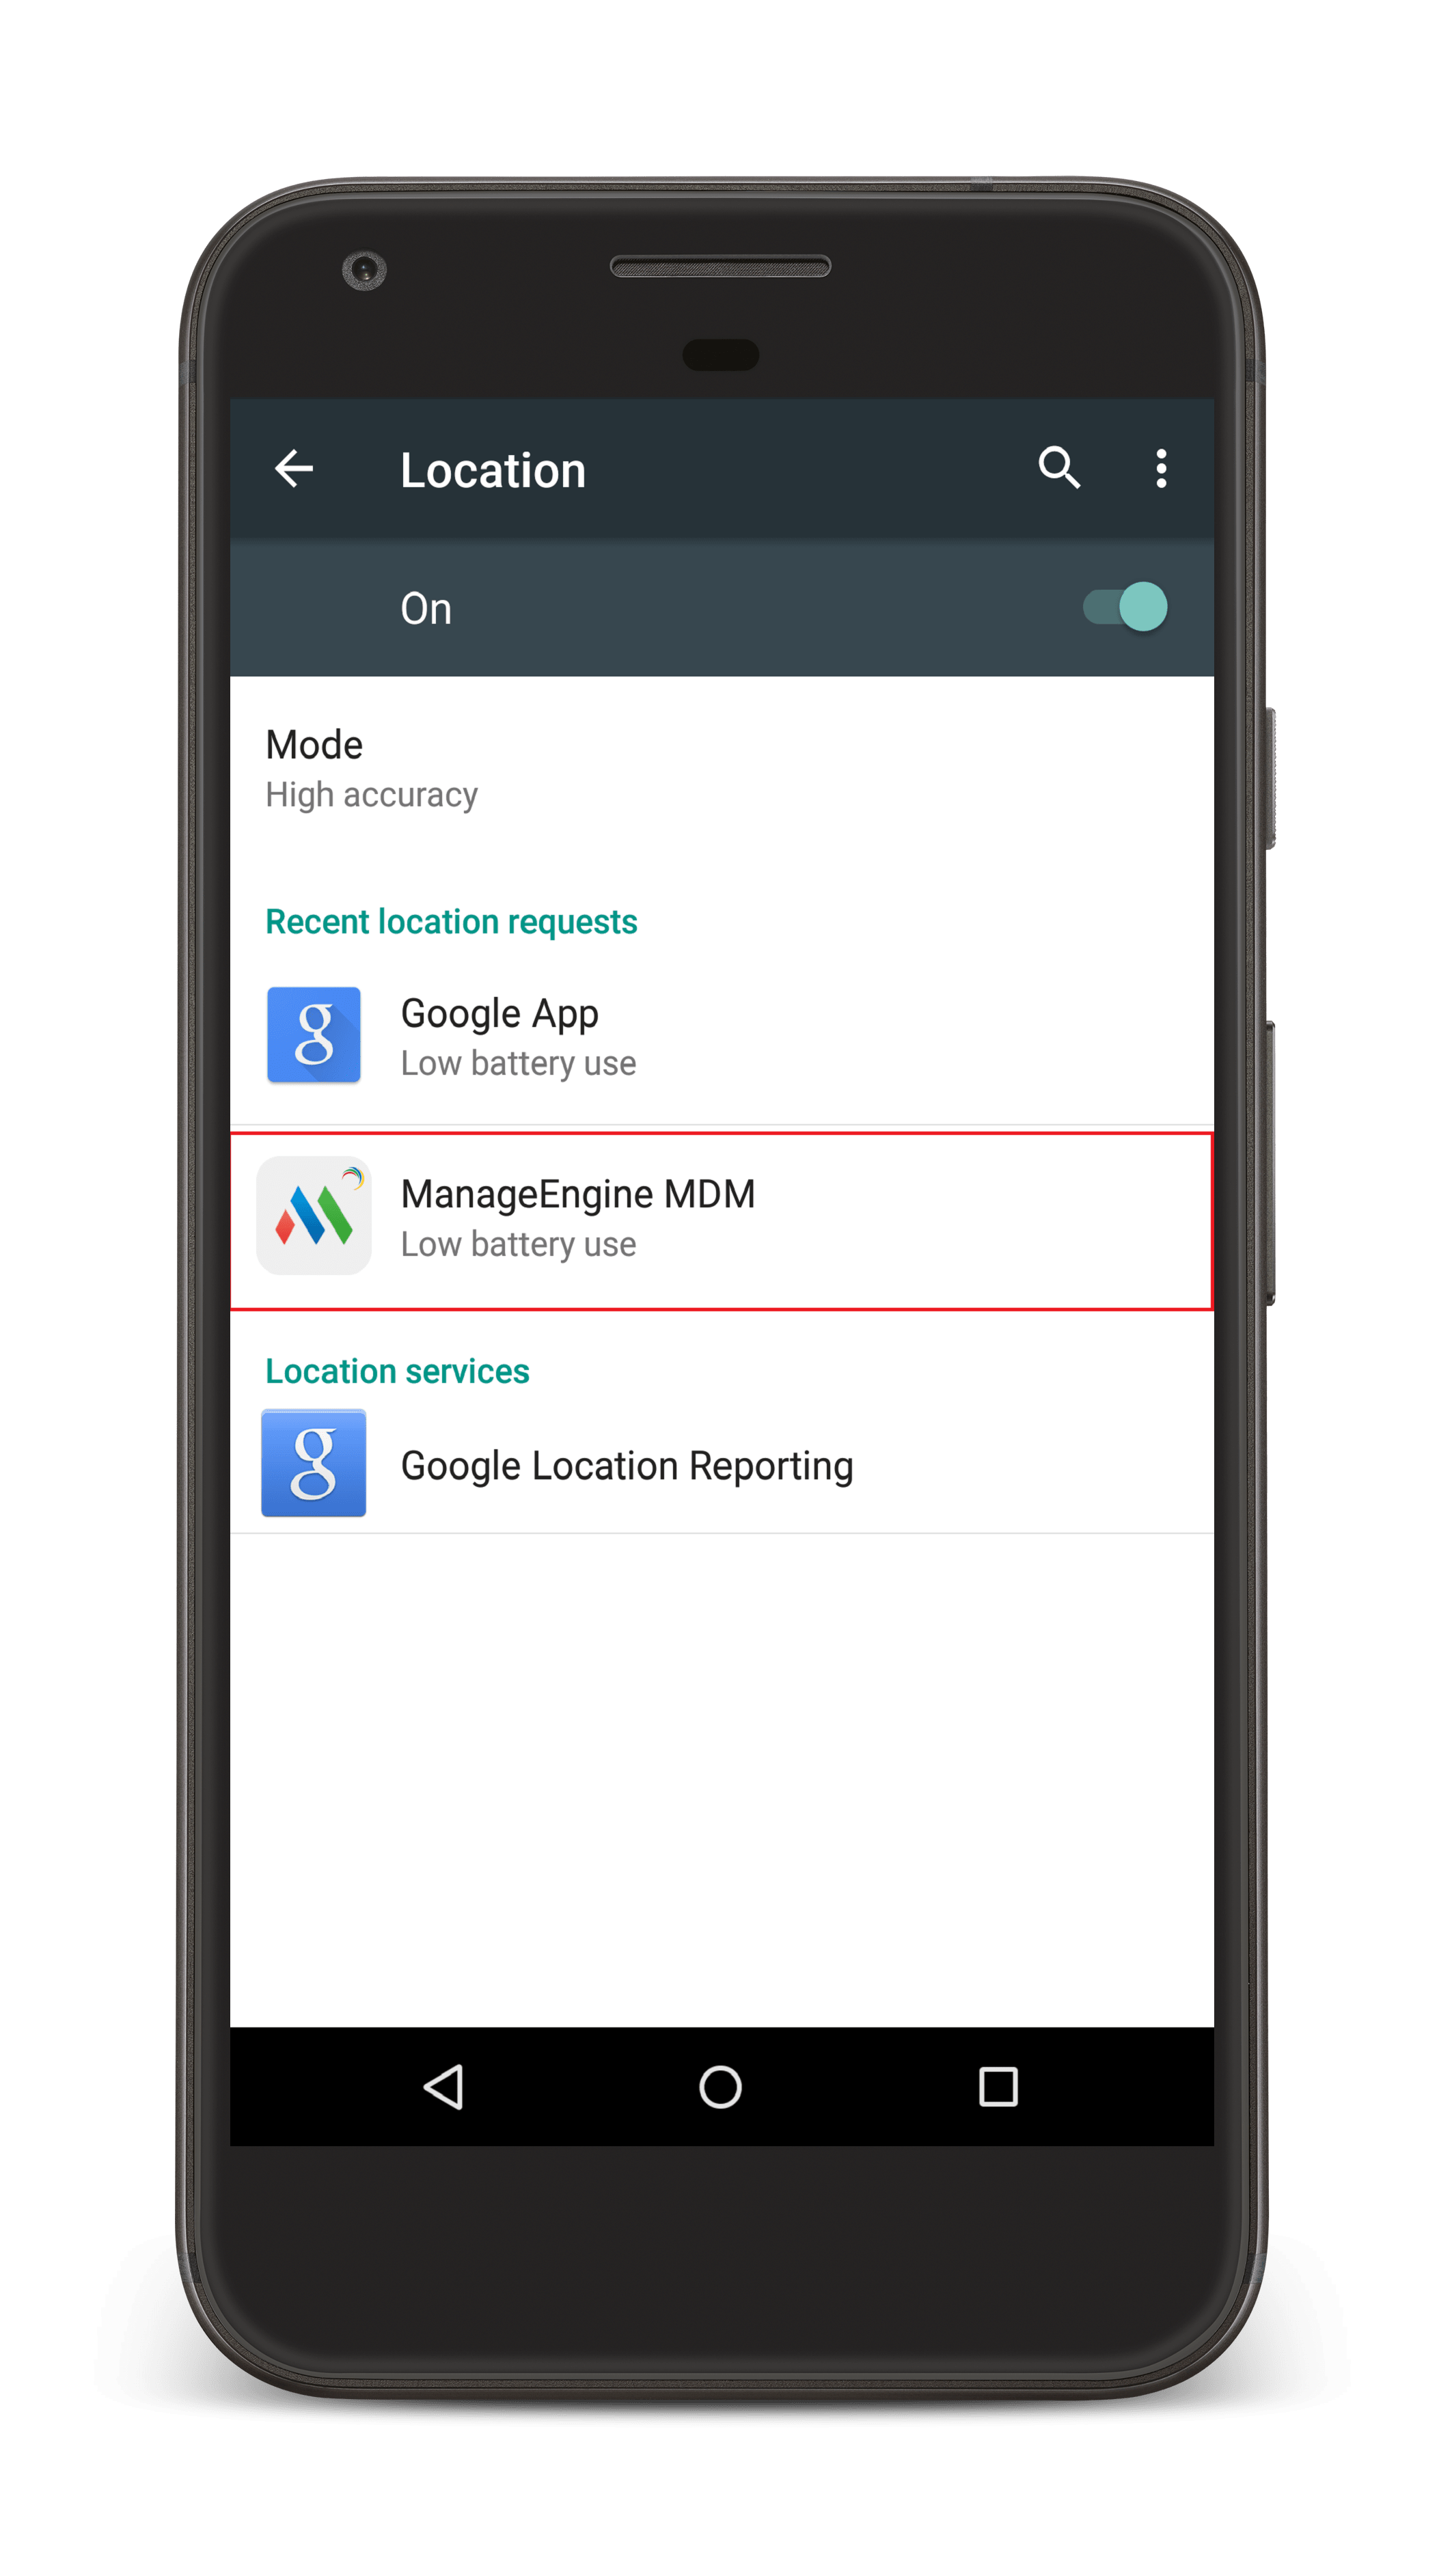 Granting Permission to ME MDM app for Android Geotracking